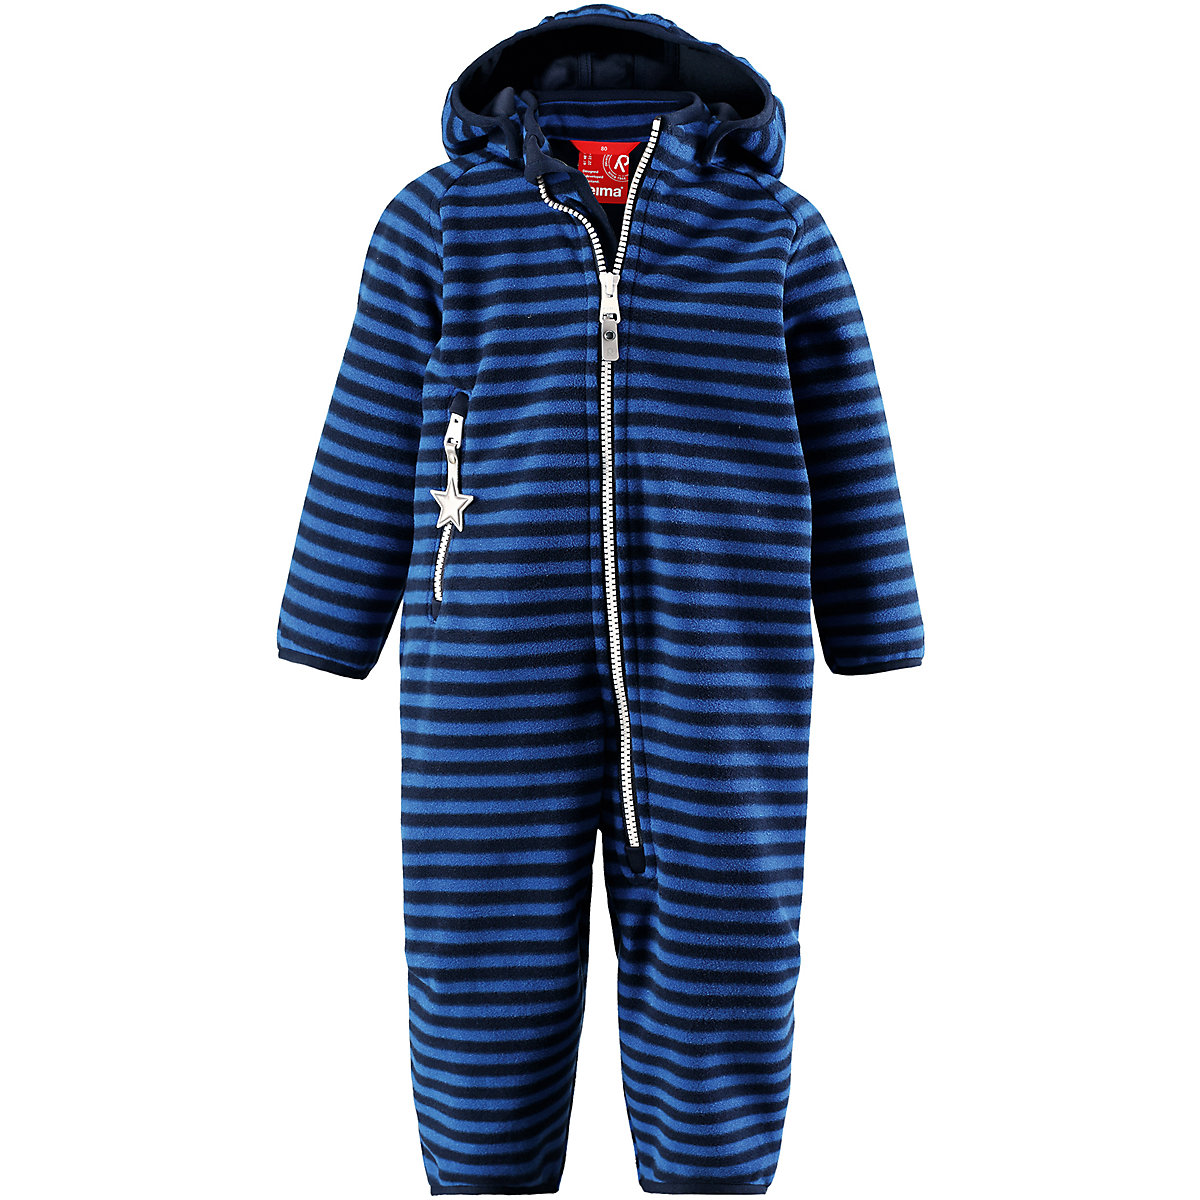 REIMA Overalls  7628177 for boys and girls polyester winter reima overalls 7628261 for boys and girls polyester winter